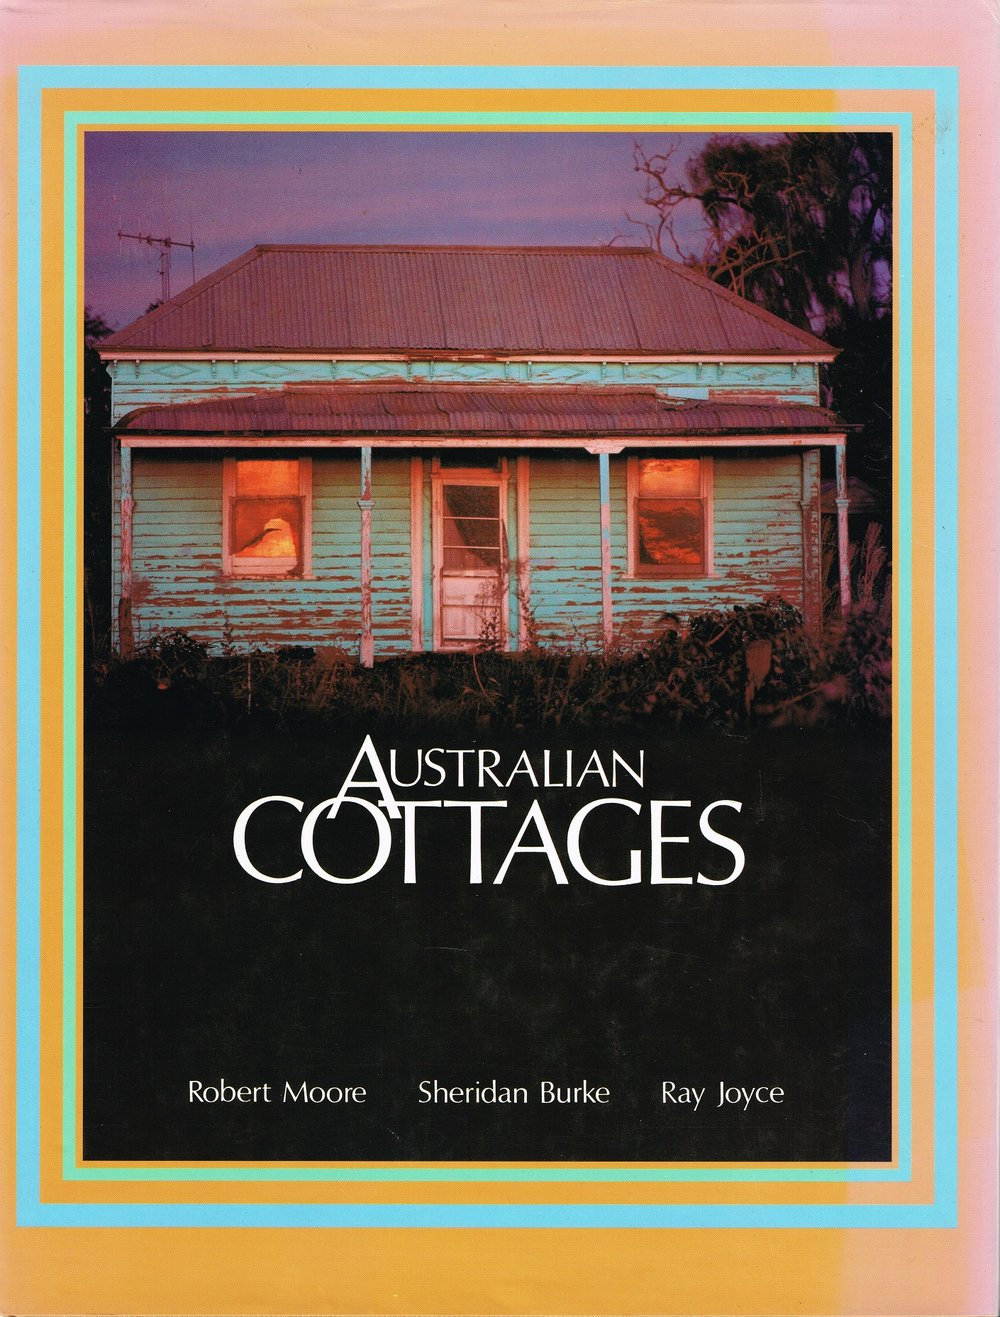 Australian Cottages Robert Moore, Sheridan Burke and Ray Joyce